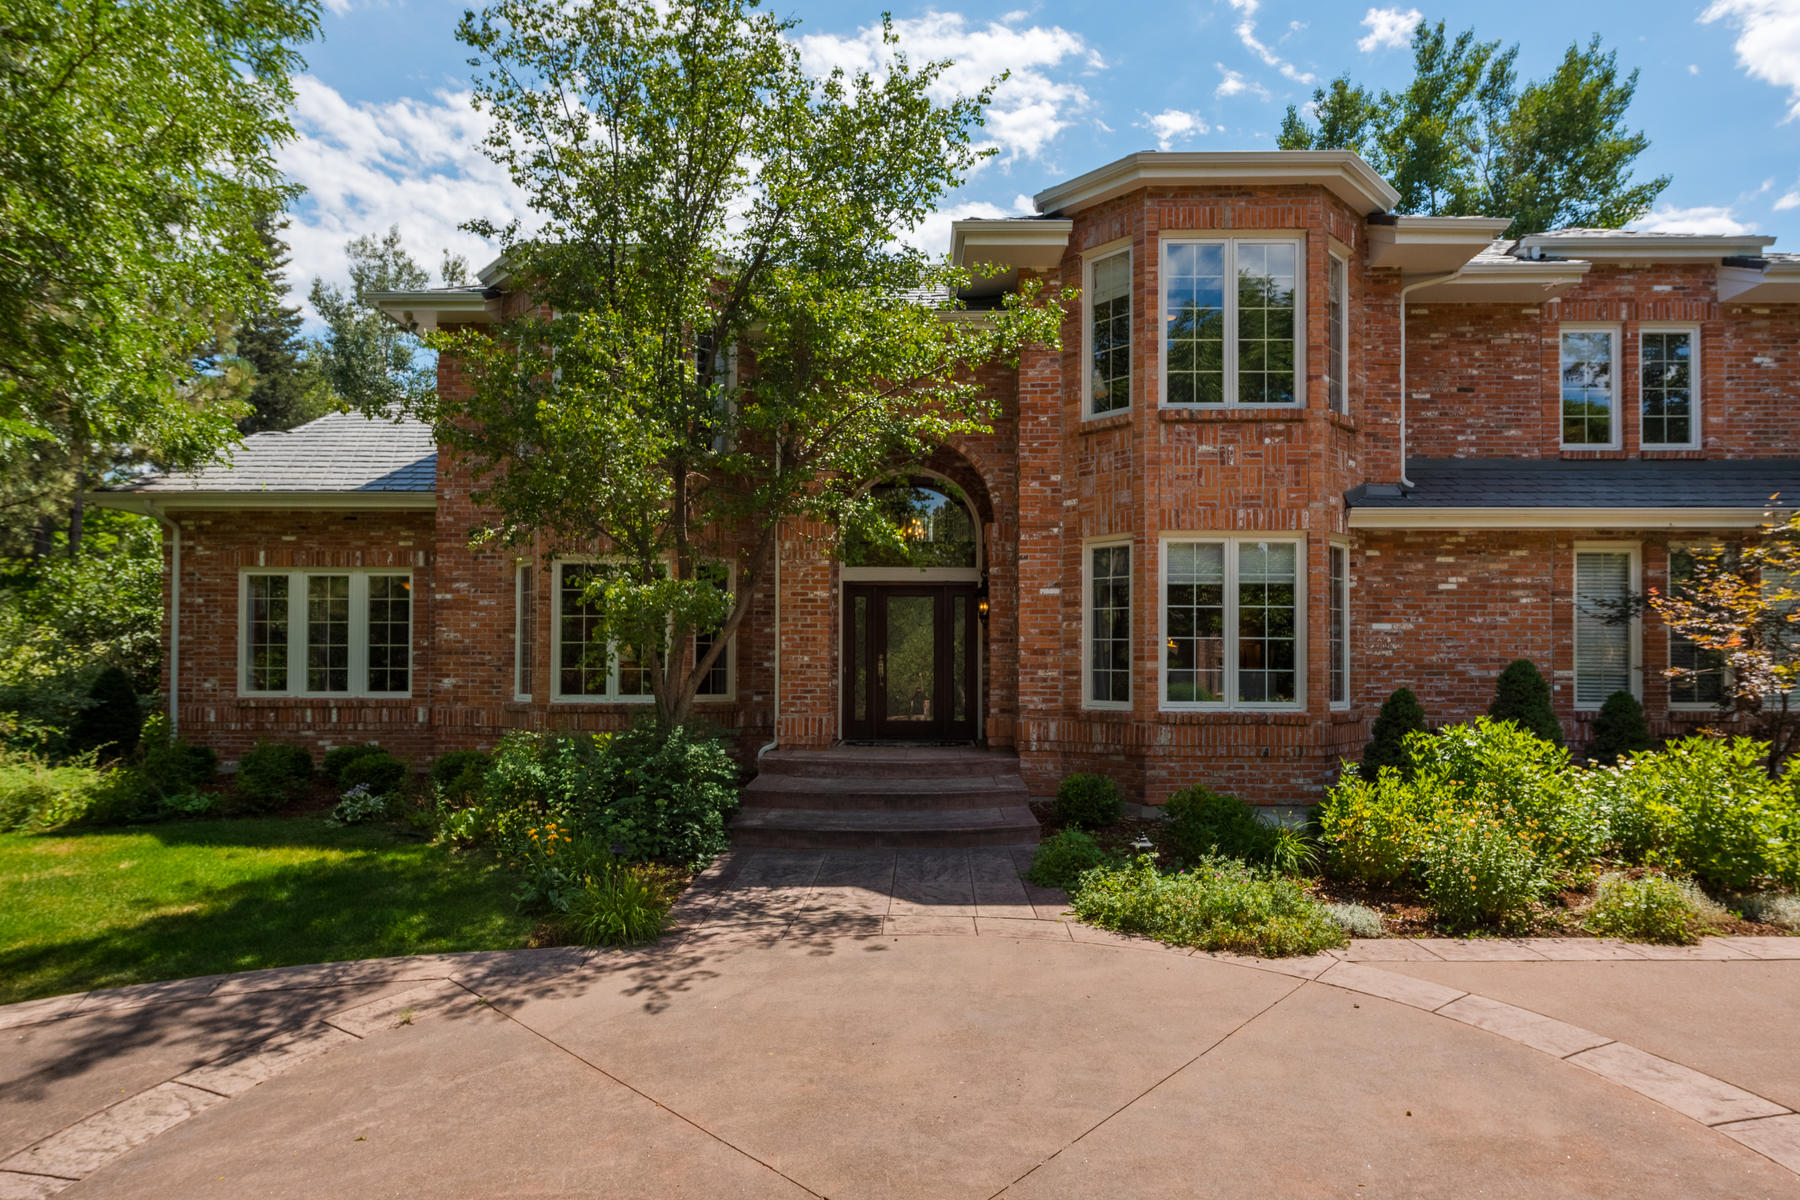 Single Family Homes for Active at Private Home in Greenwood Village 5315 S Race Court Greenwood Village, Colorado 80121 United States